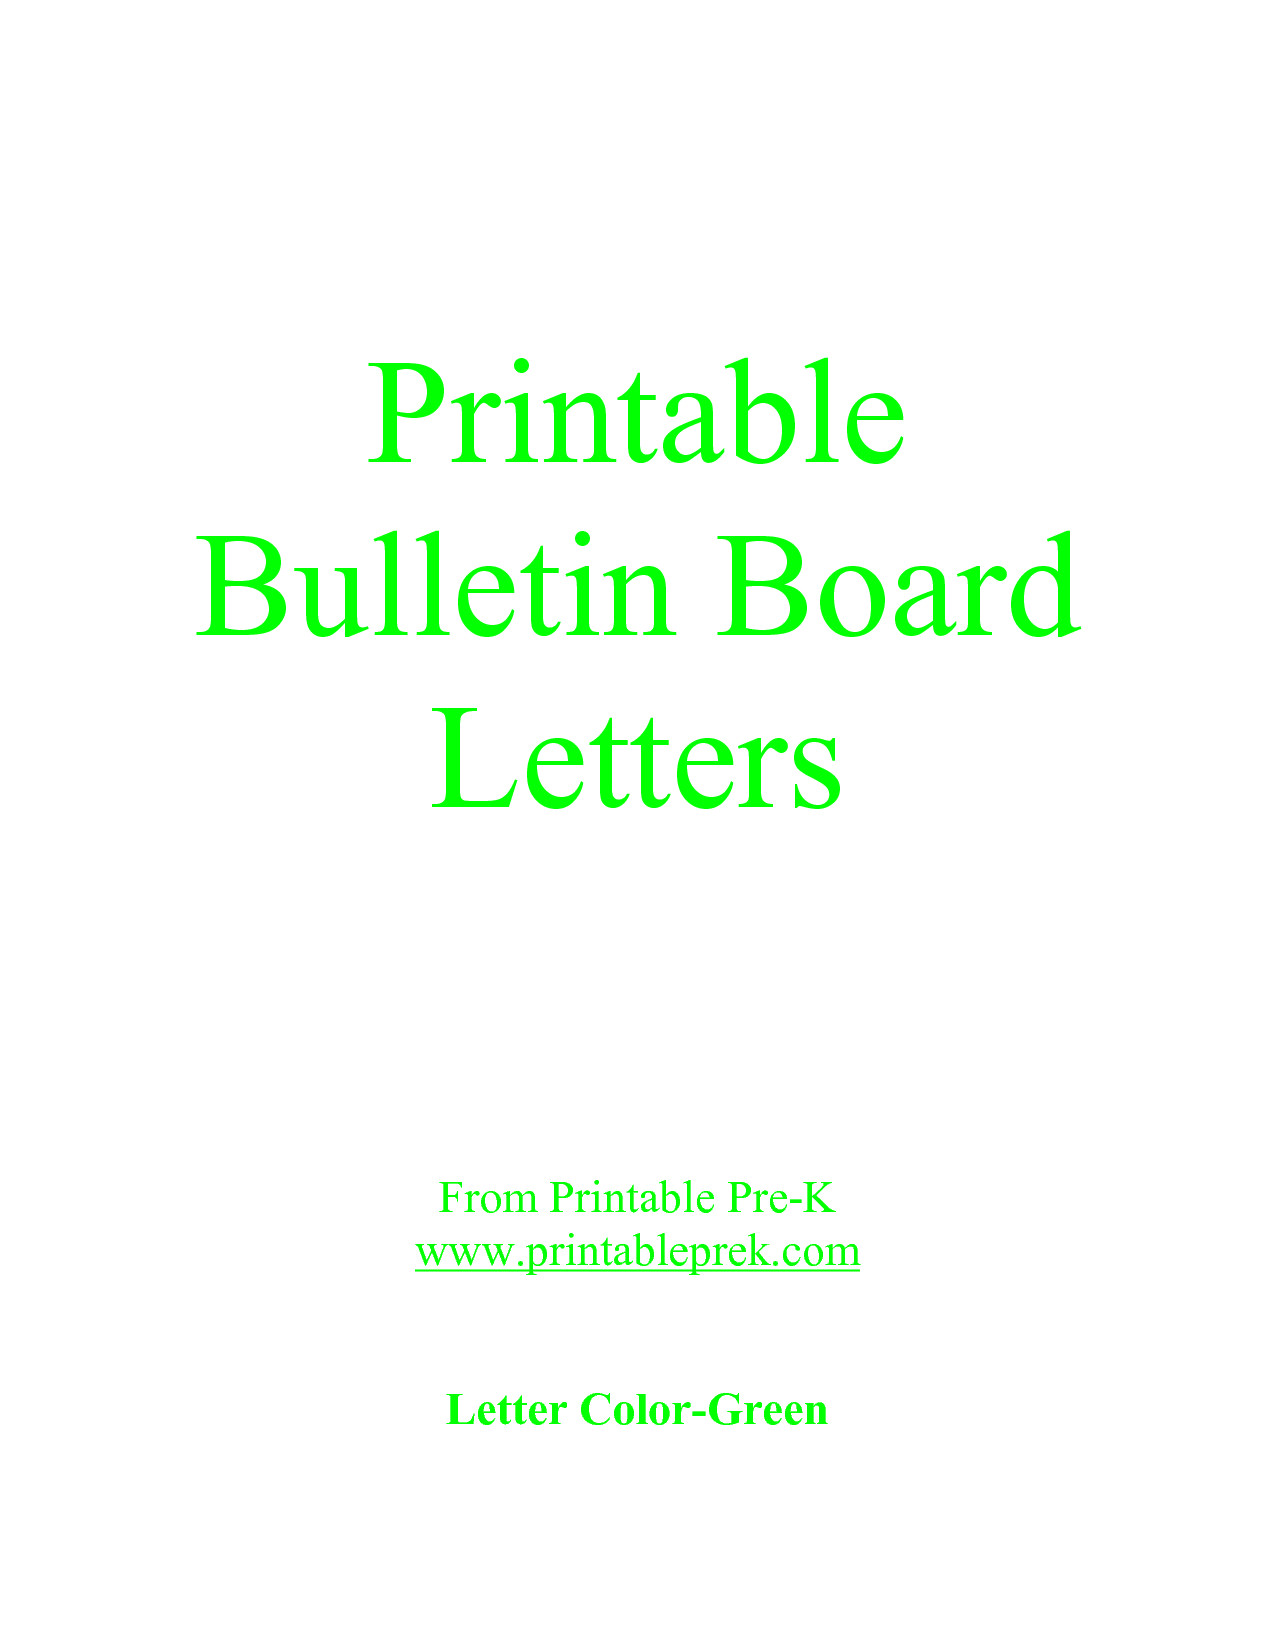 Letters for Bulletin Boards Templates Letter Printable Images Gallery Category Page 17